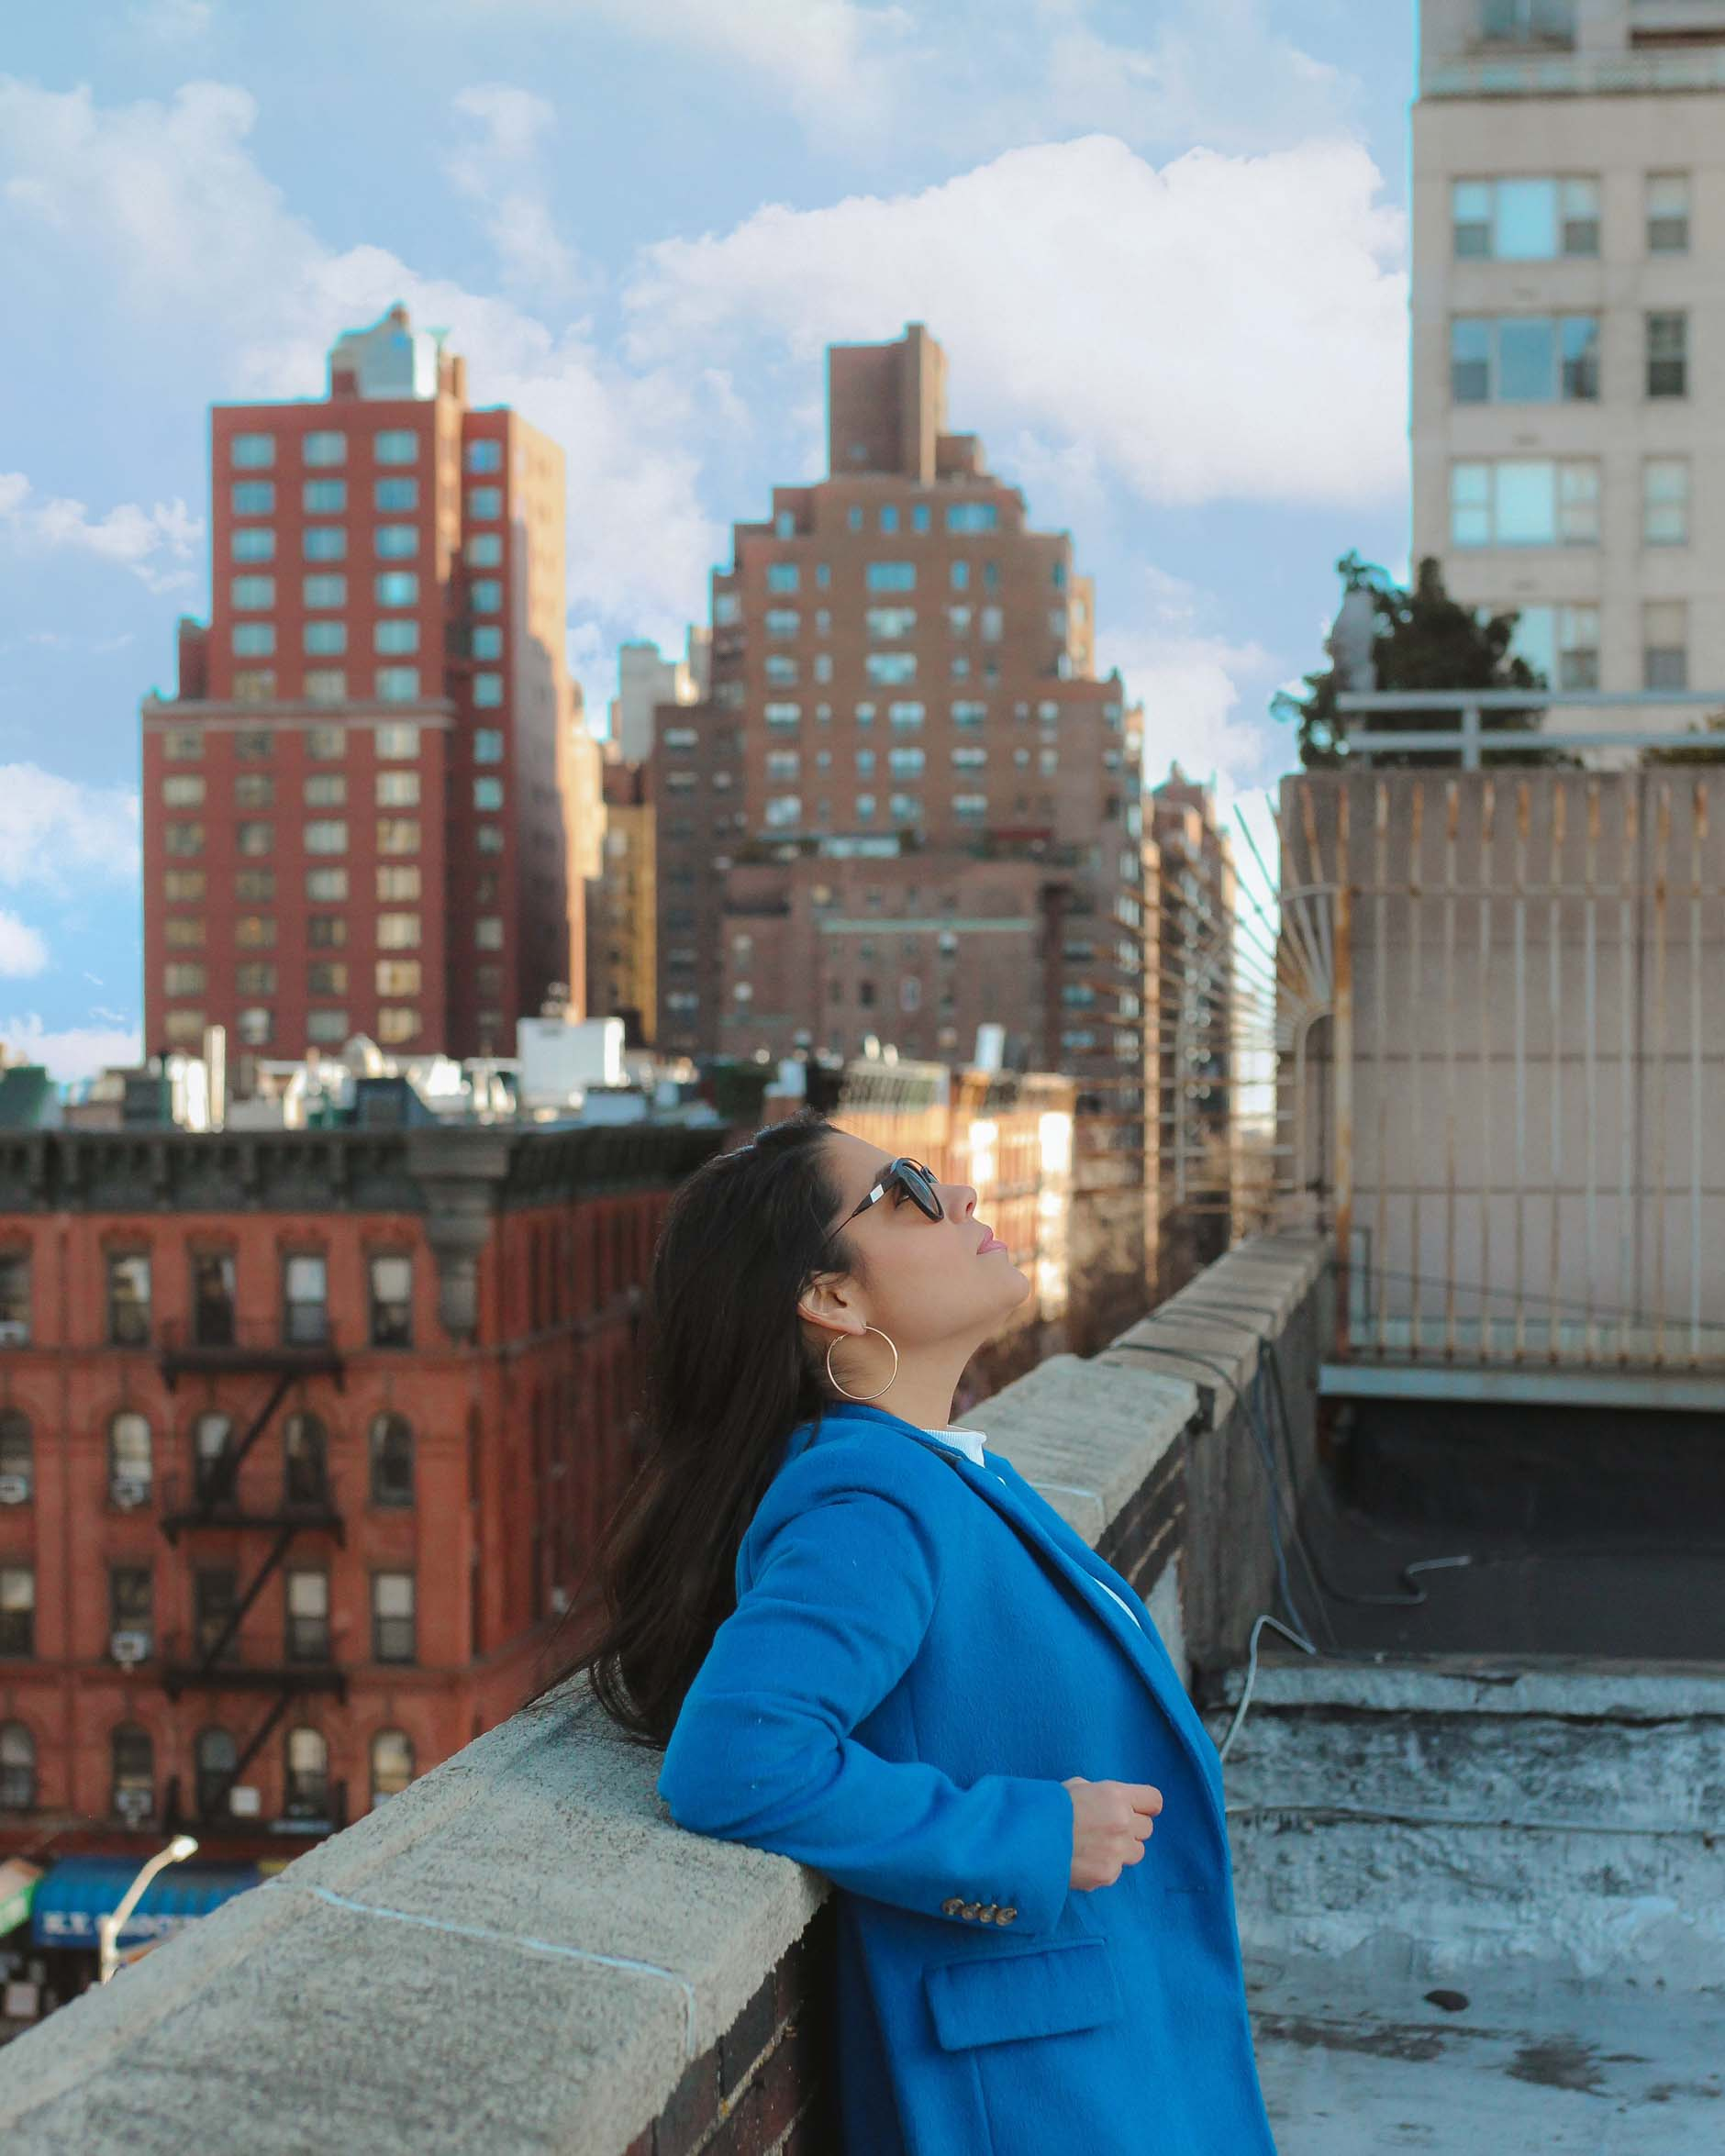 naty michele wearing a blue coat on a new york city rooftop